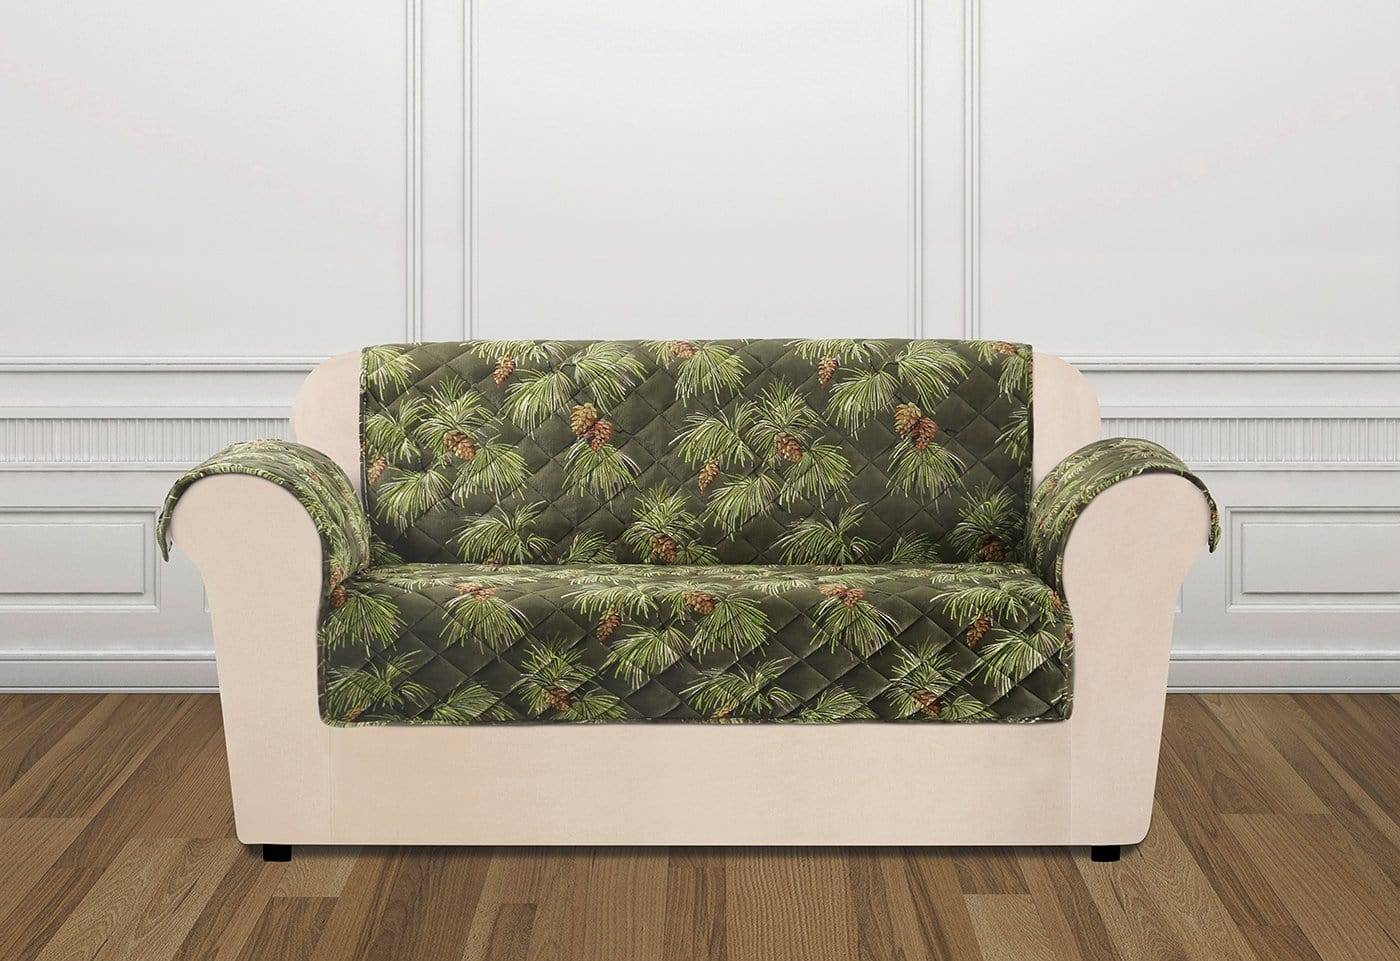 Holiday Loveseat Furniture Cover 100% Polyester Pet Furniture Cover Machine Washable - Loveseat / Pinecone Evergreen